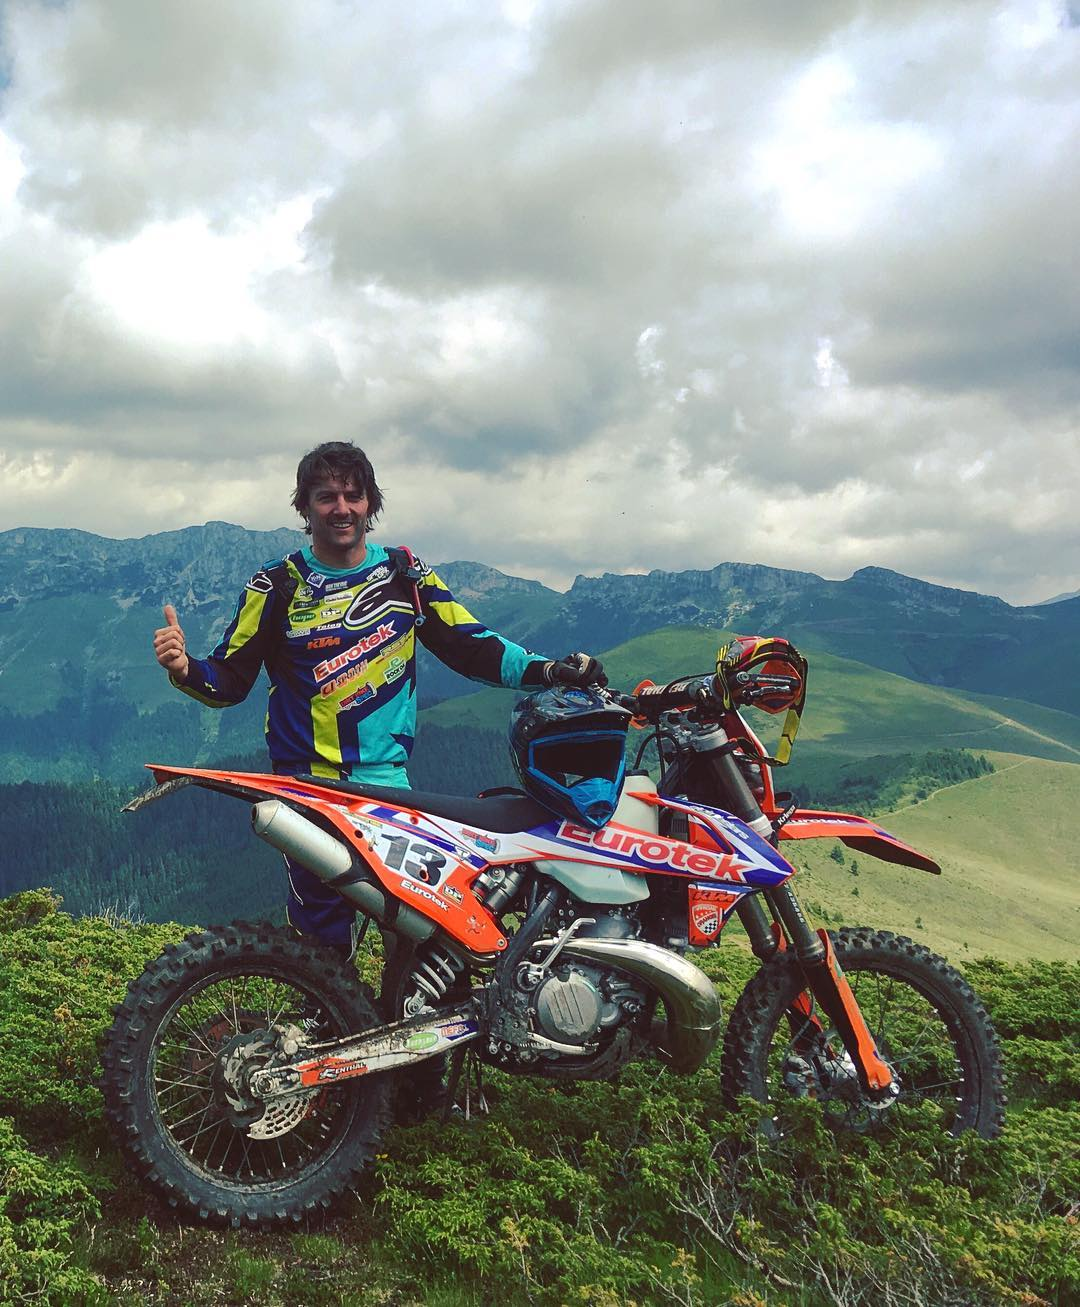 Great shot sent to us by @paulboltsenduro out in Romania training for this years #Romaniacs on his new 2017 #ktm EXC.